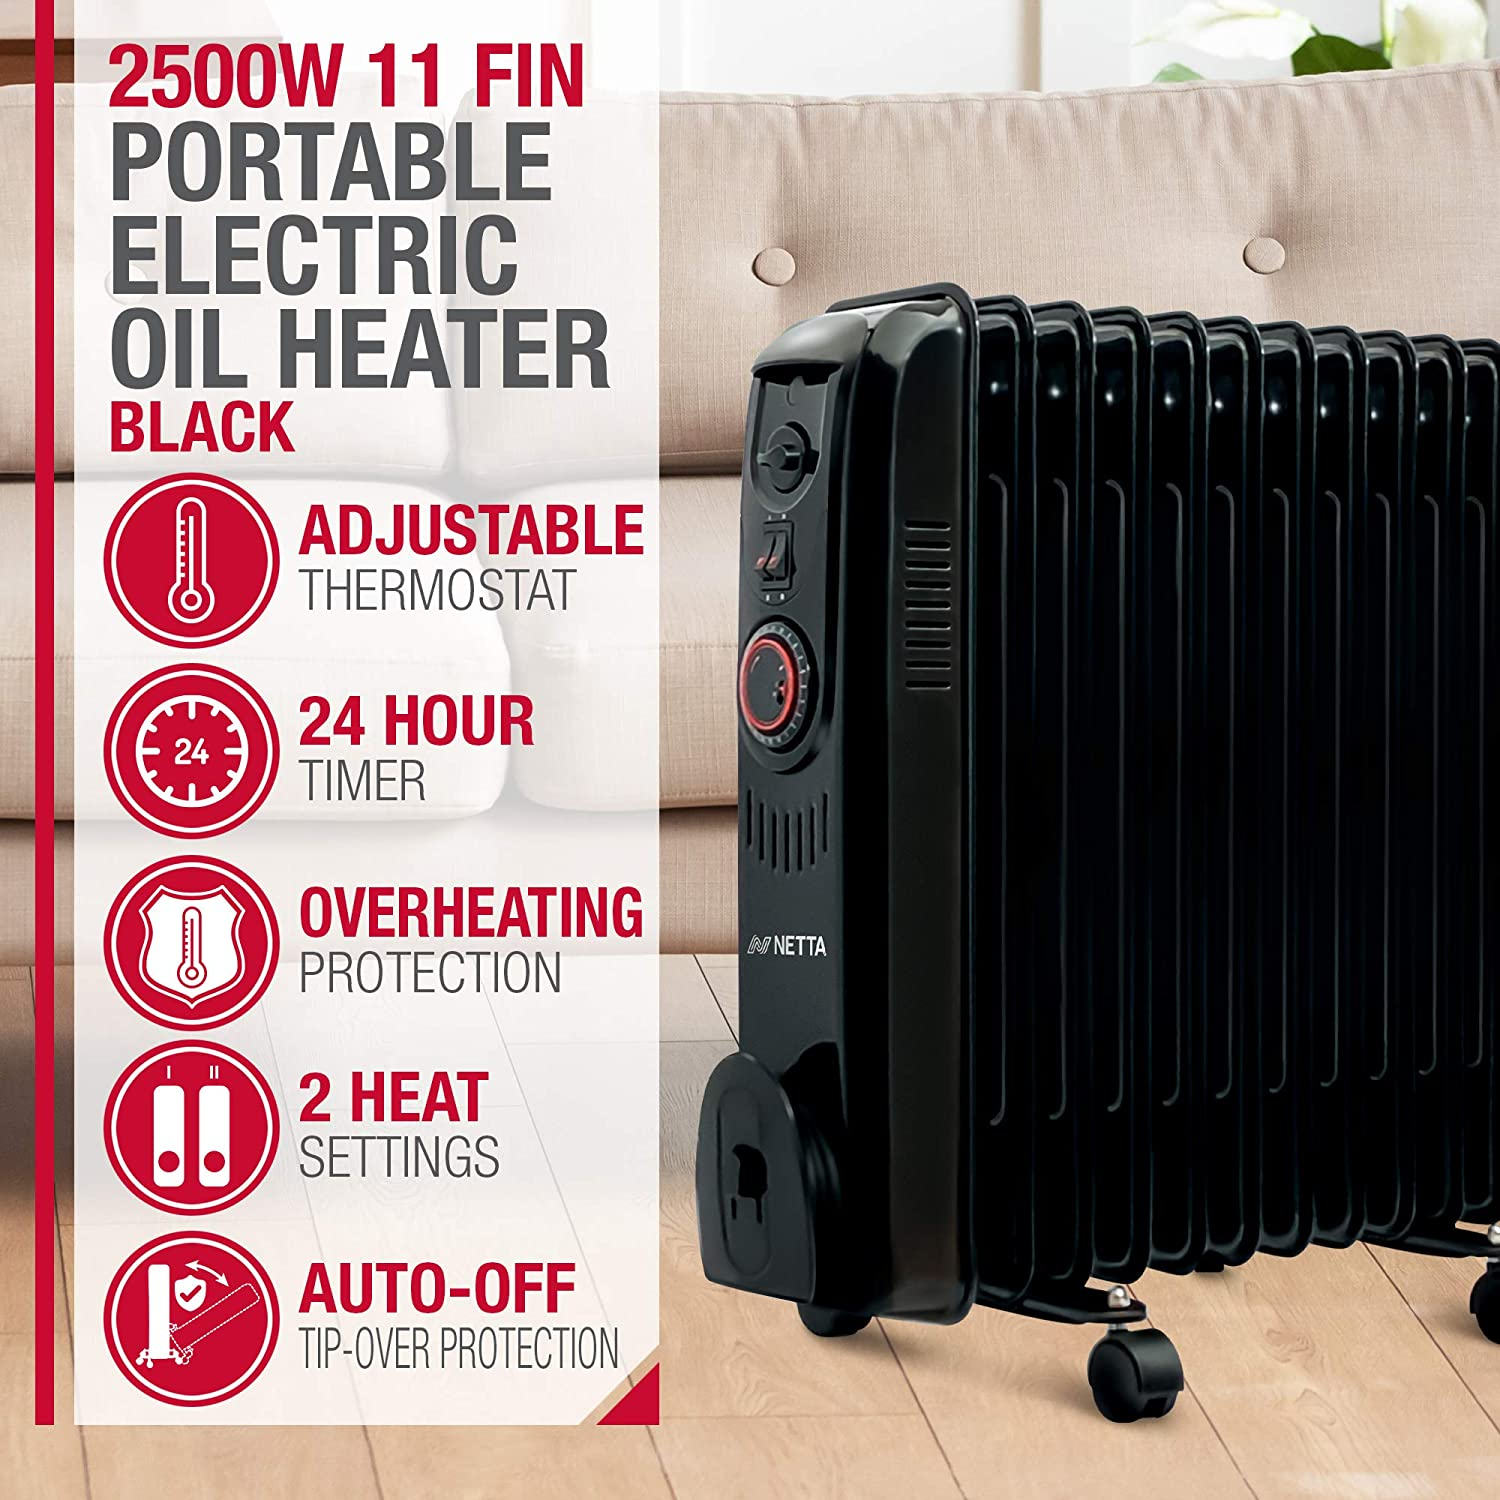 NETTA Oil Filled Radiator 2500W Portable Electric Heater with Thermostat & 24 Hour Timer 2 Power Settings Home Office Energy Efficiency – 11 Fin, Grey Black